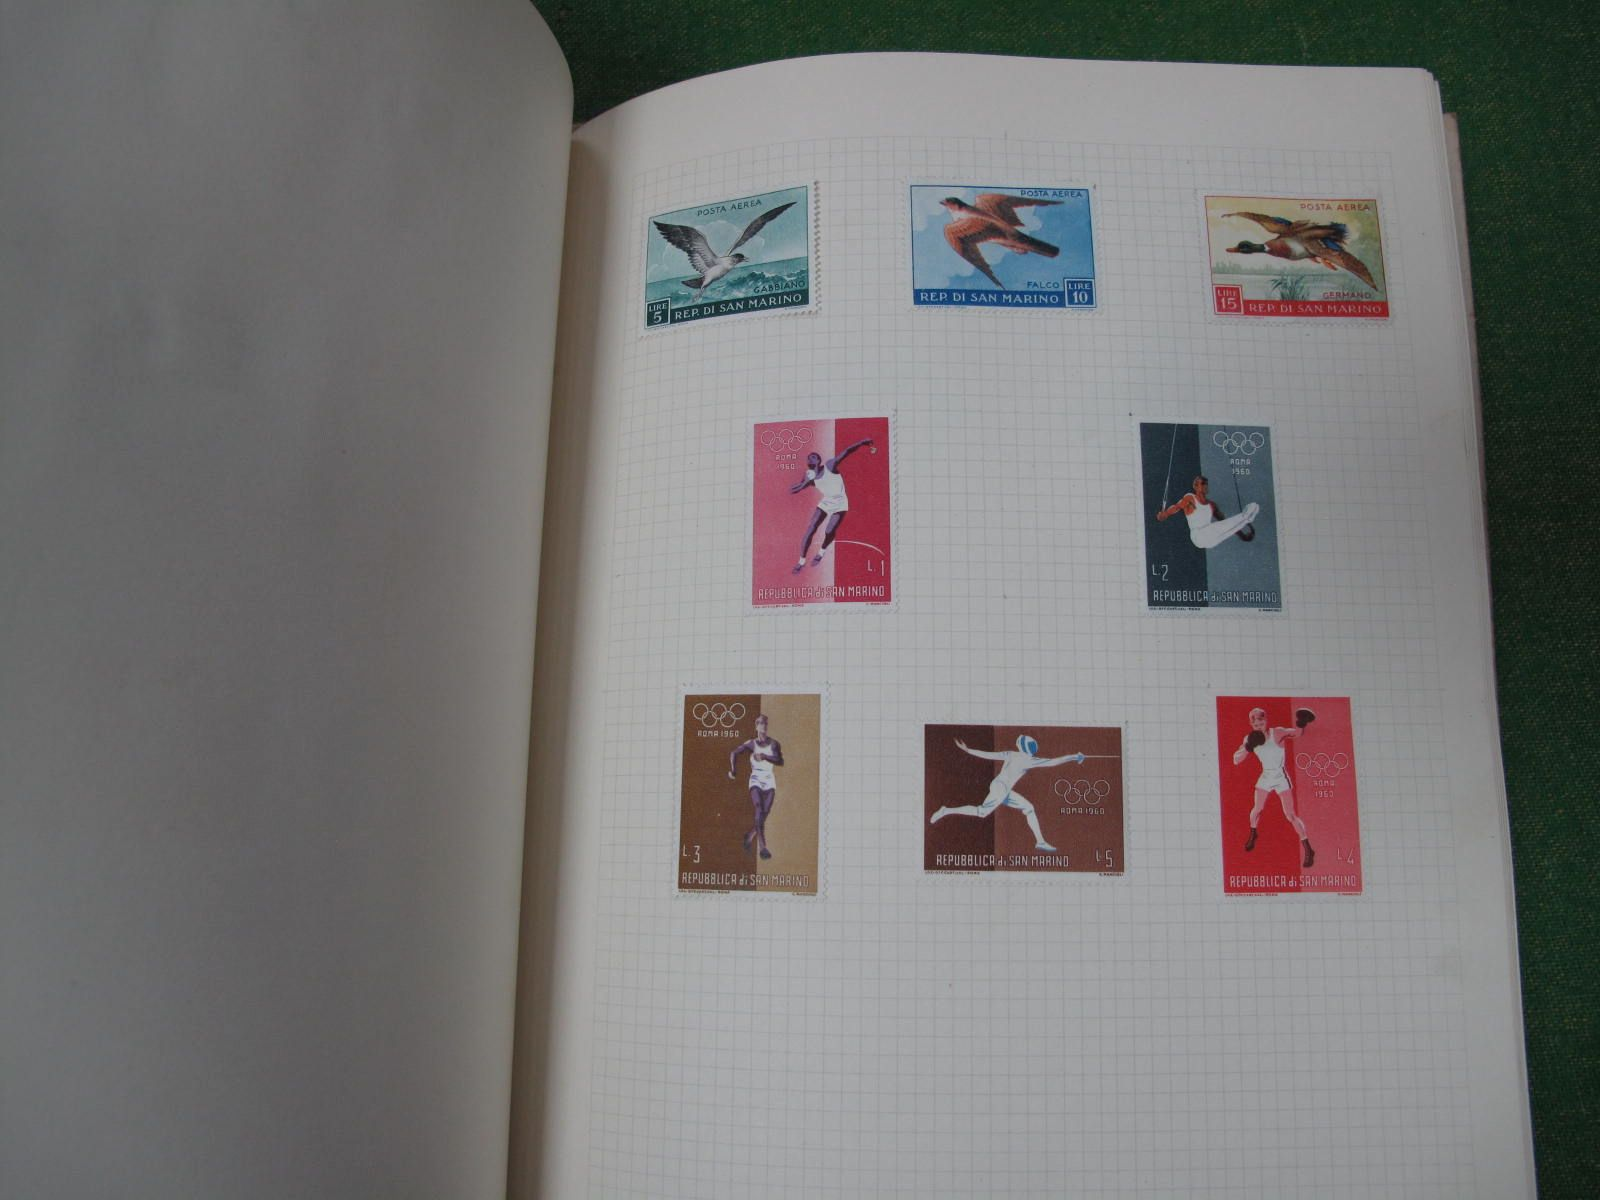 A French Collection of stamps, mixed mint and fine used, from 1850 to 1950, well presented in a